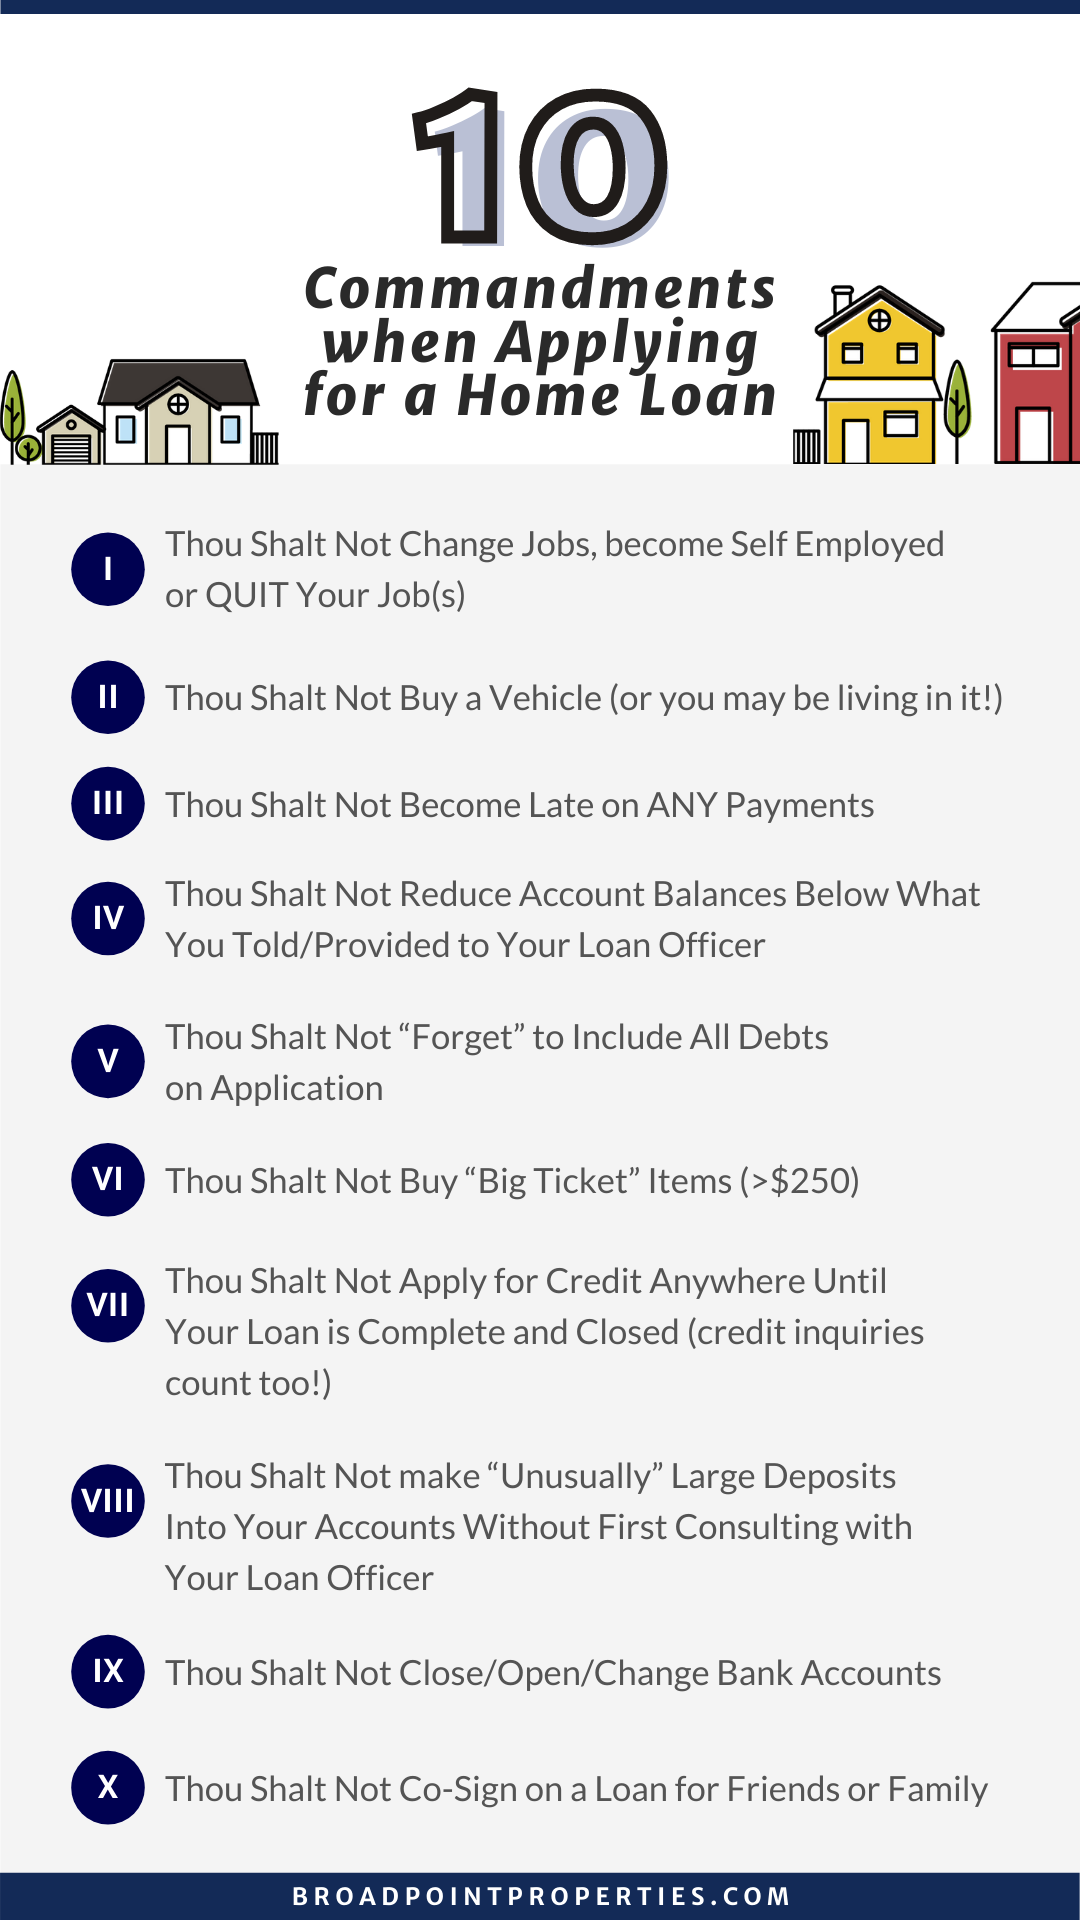 The 10 Commandments of Getting a Home Loan